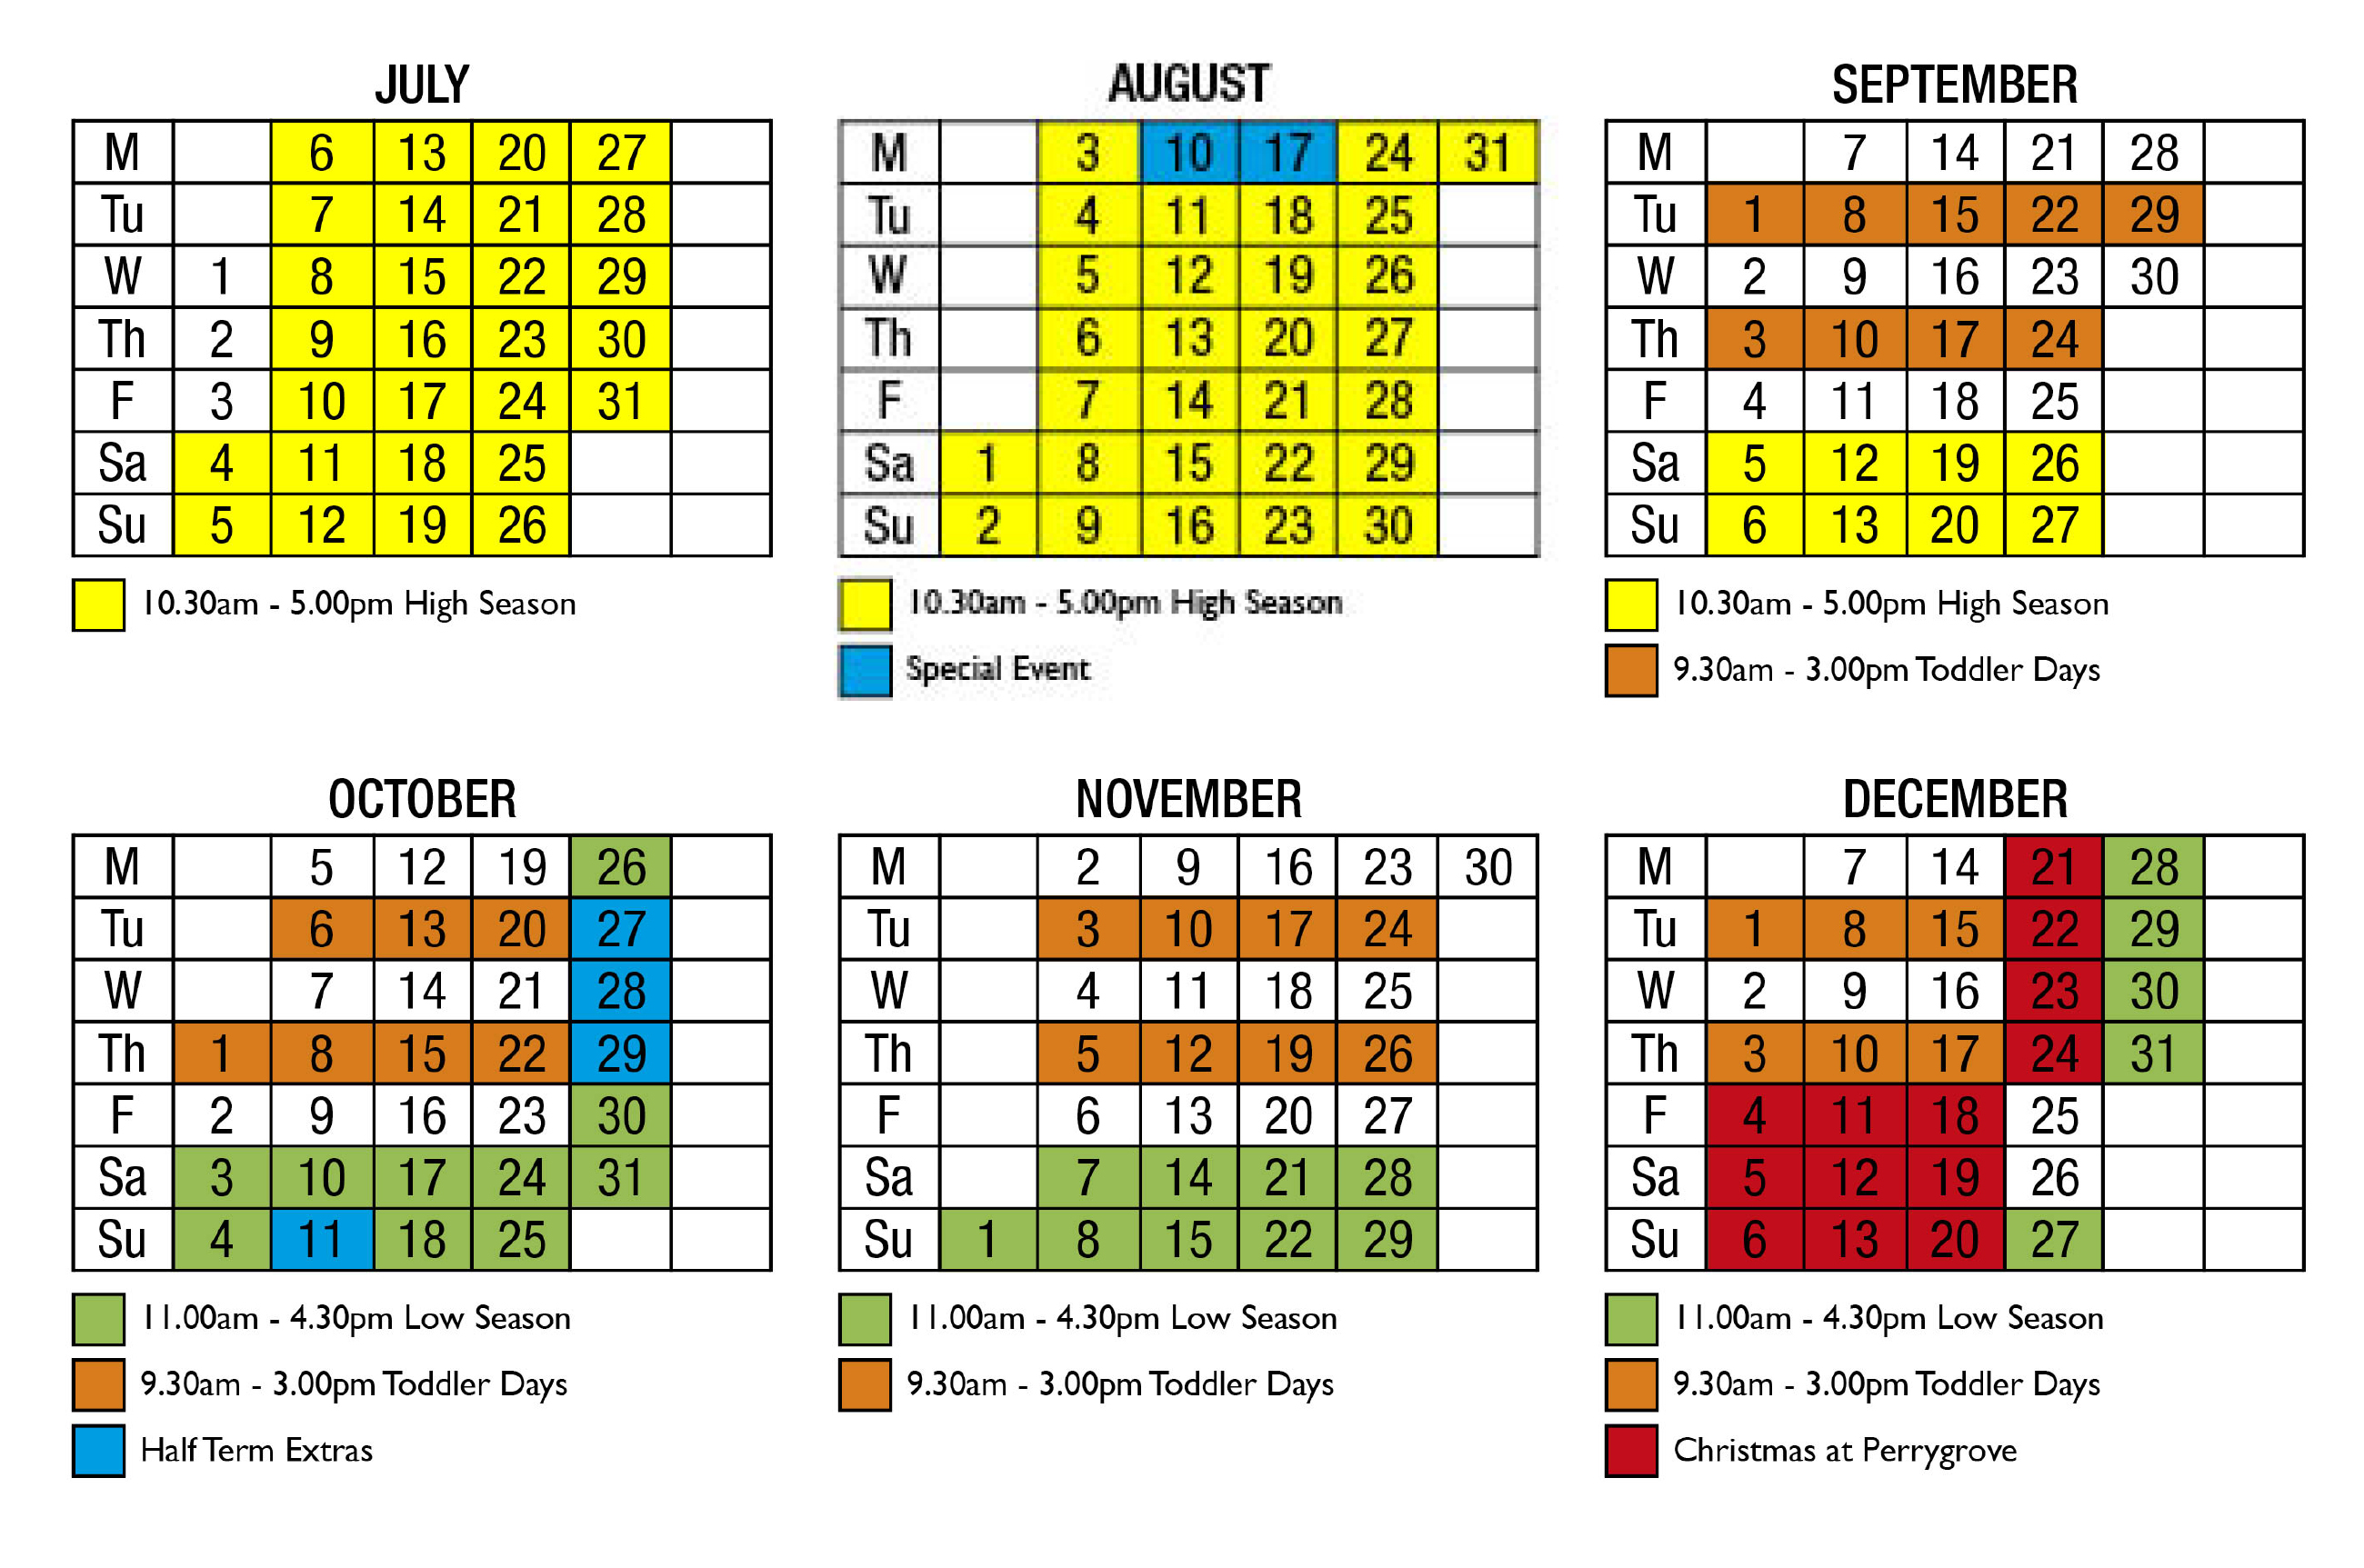 perrygrove opening times calendar